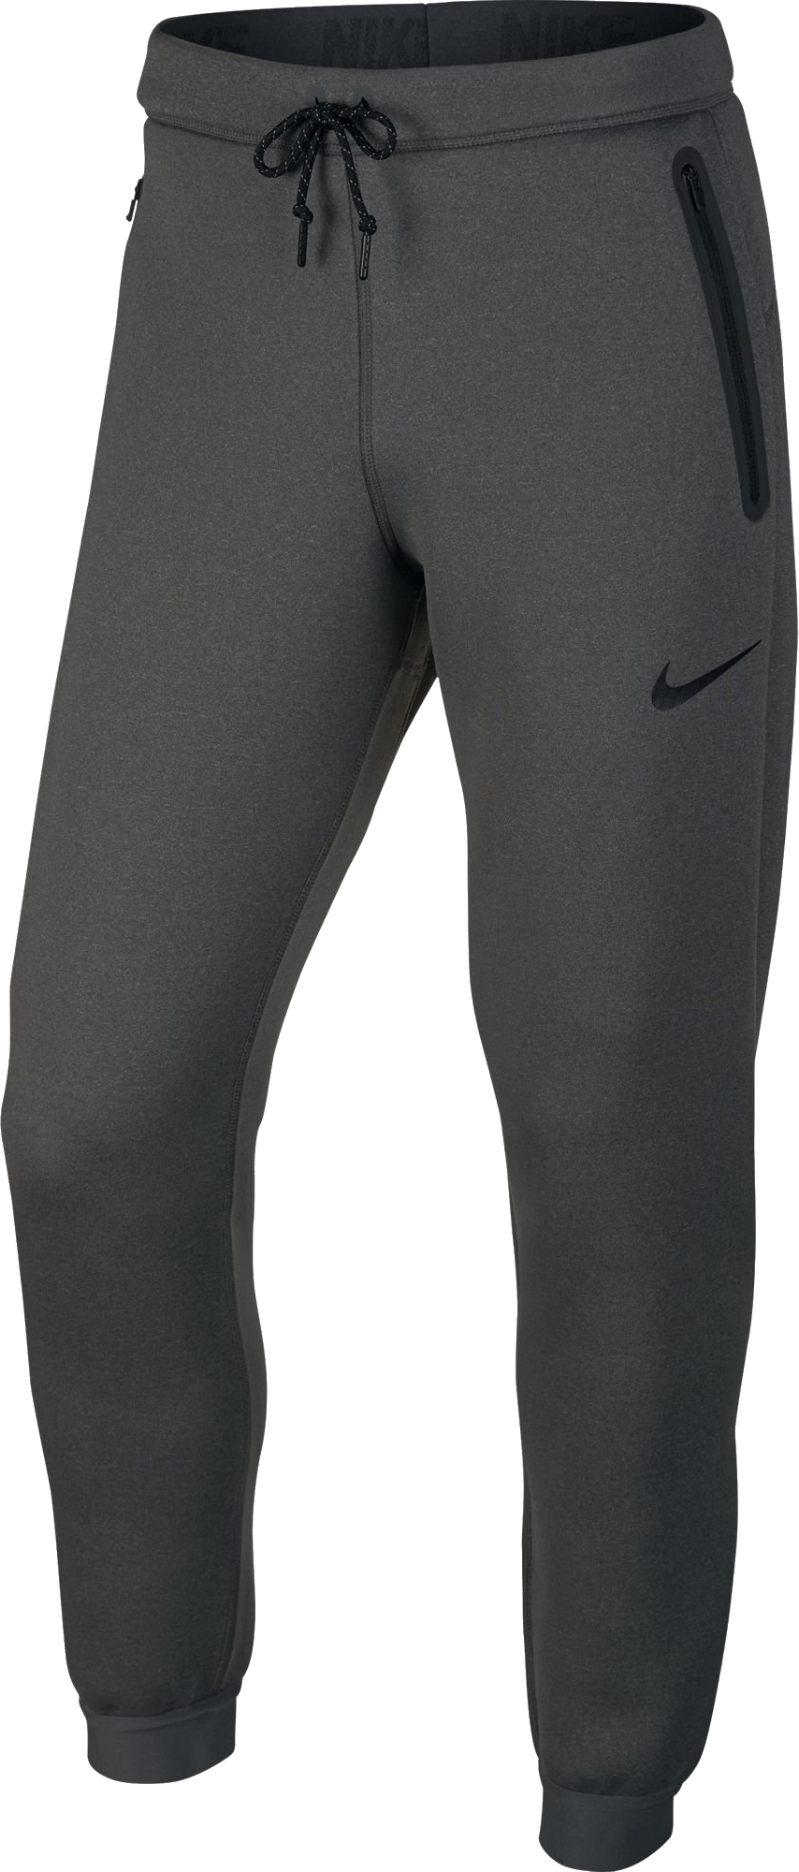 41b593d310c59 10 Best Workout Pants for Women and Men 2018 - Detailed Review ...